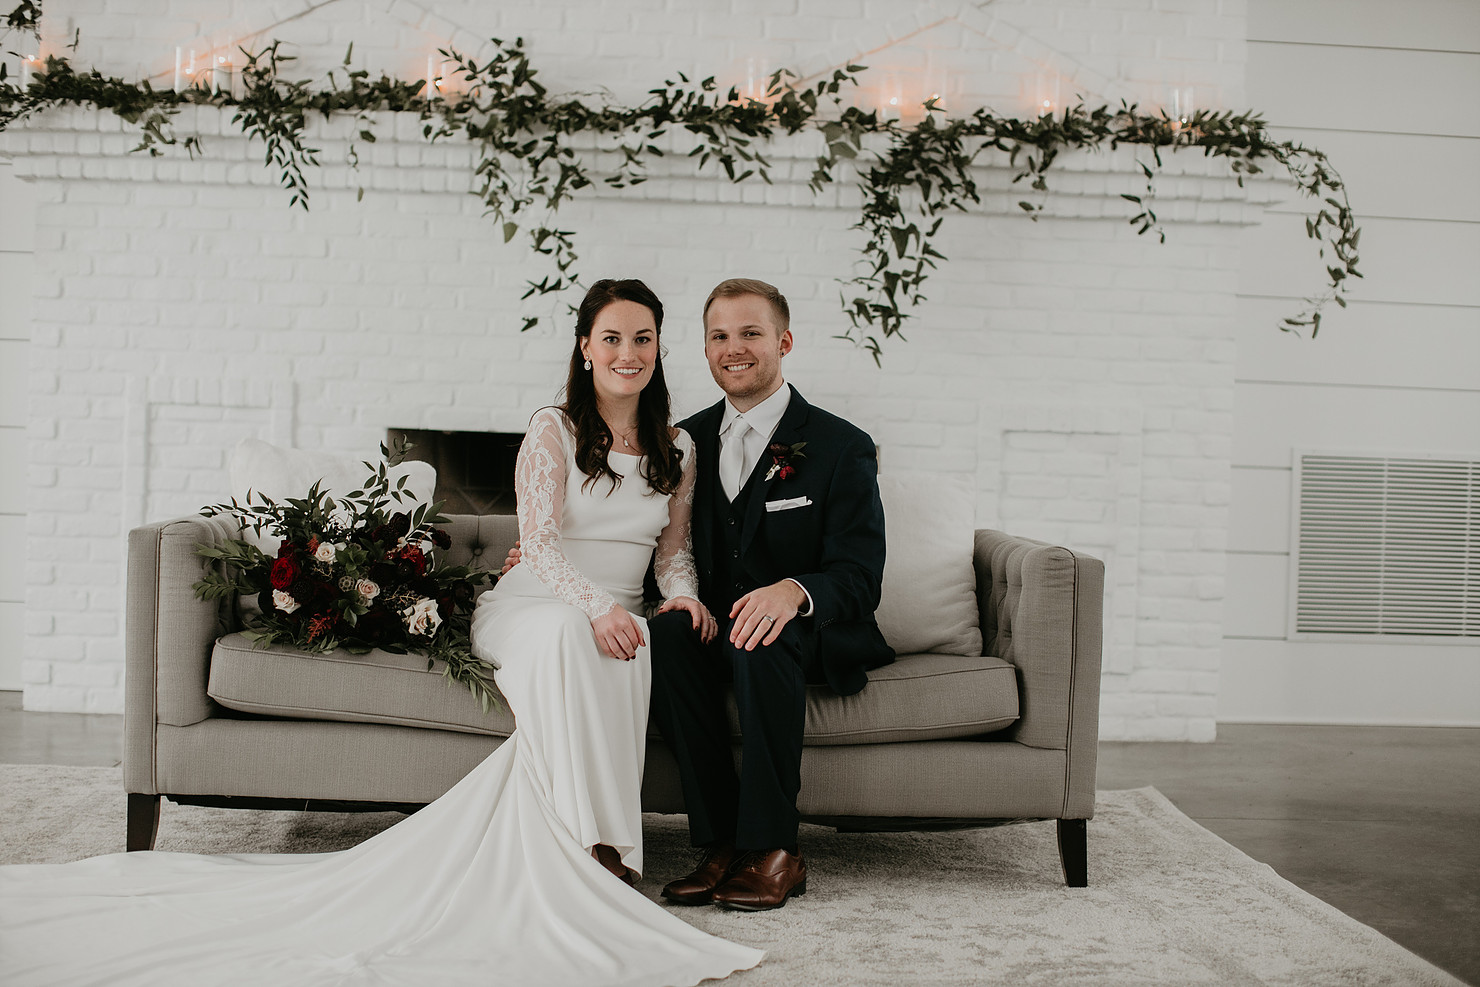 Katie & Alex Married 12/08/18 at The Hutton House | Photography by    Sophisticated Grace